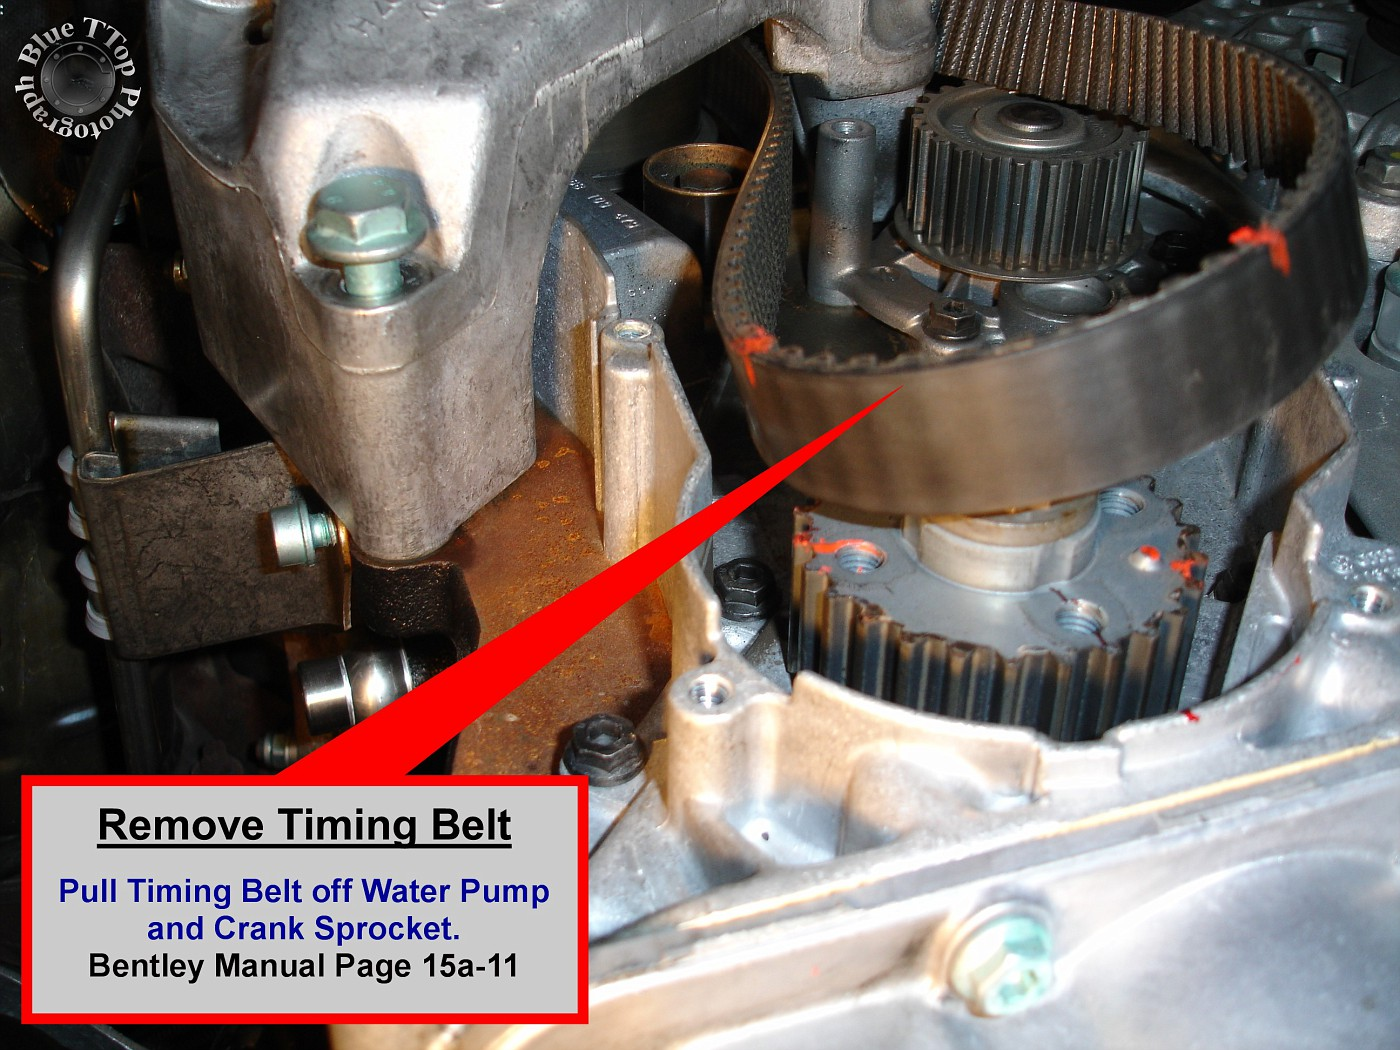 timing belt replacement writeup with 61 pictures and 44 steps rh audiworld com Audi A3 Hatchback Audi A3 TDI